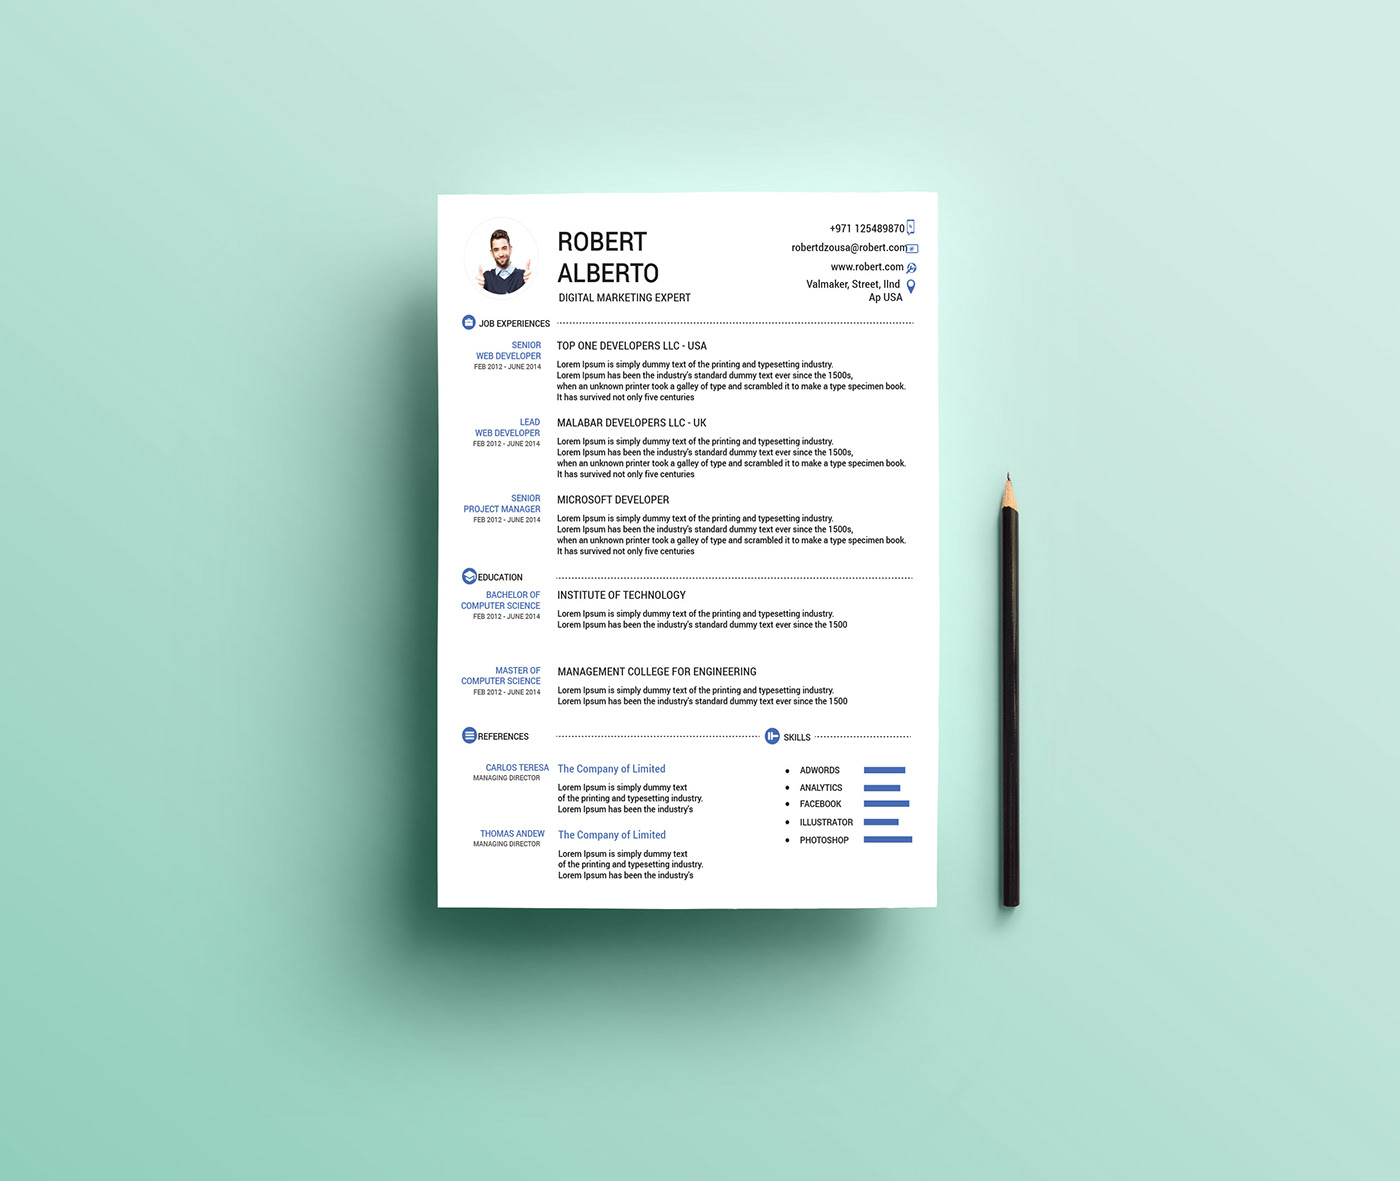 free one resume templates awesome microsoft word clean template business strategy sample Resume Free Awesome Resume Templates Microsoft Word